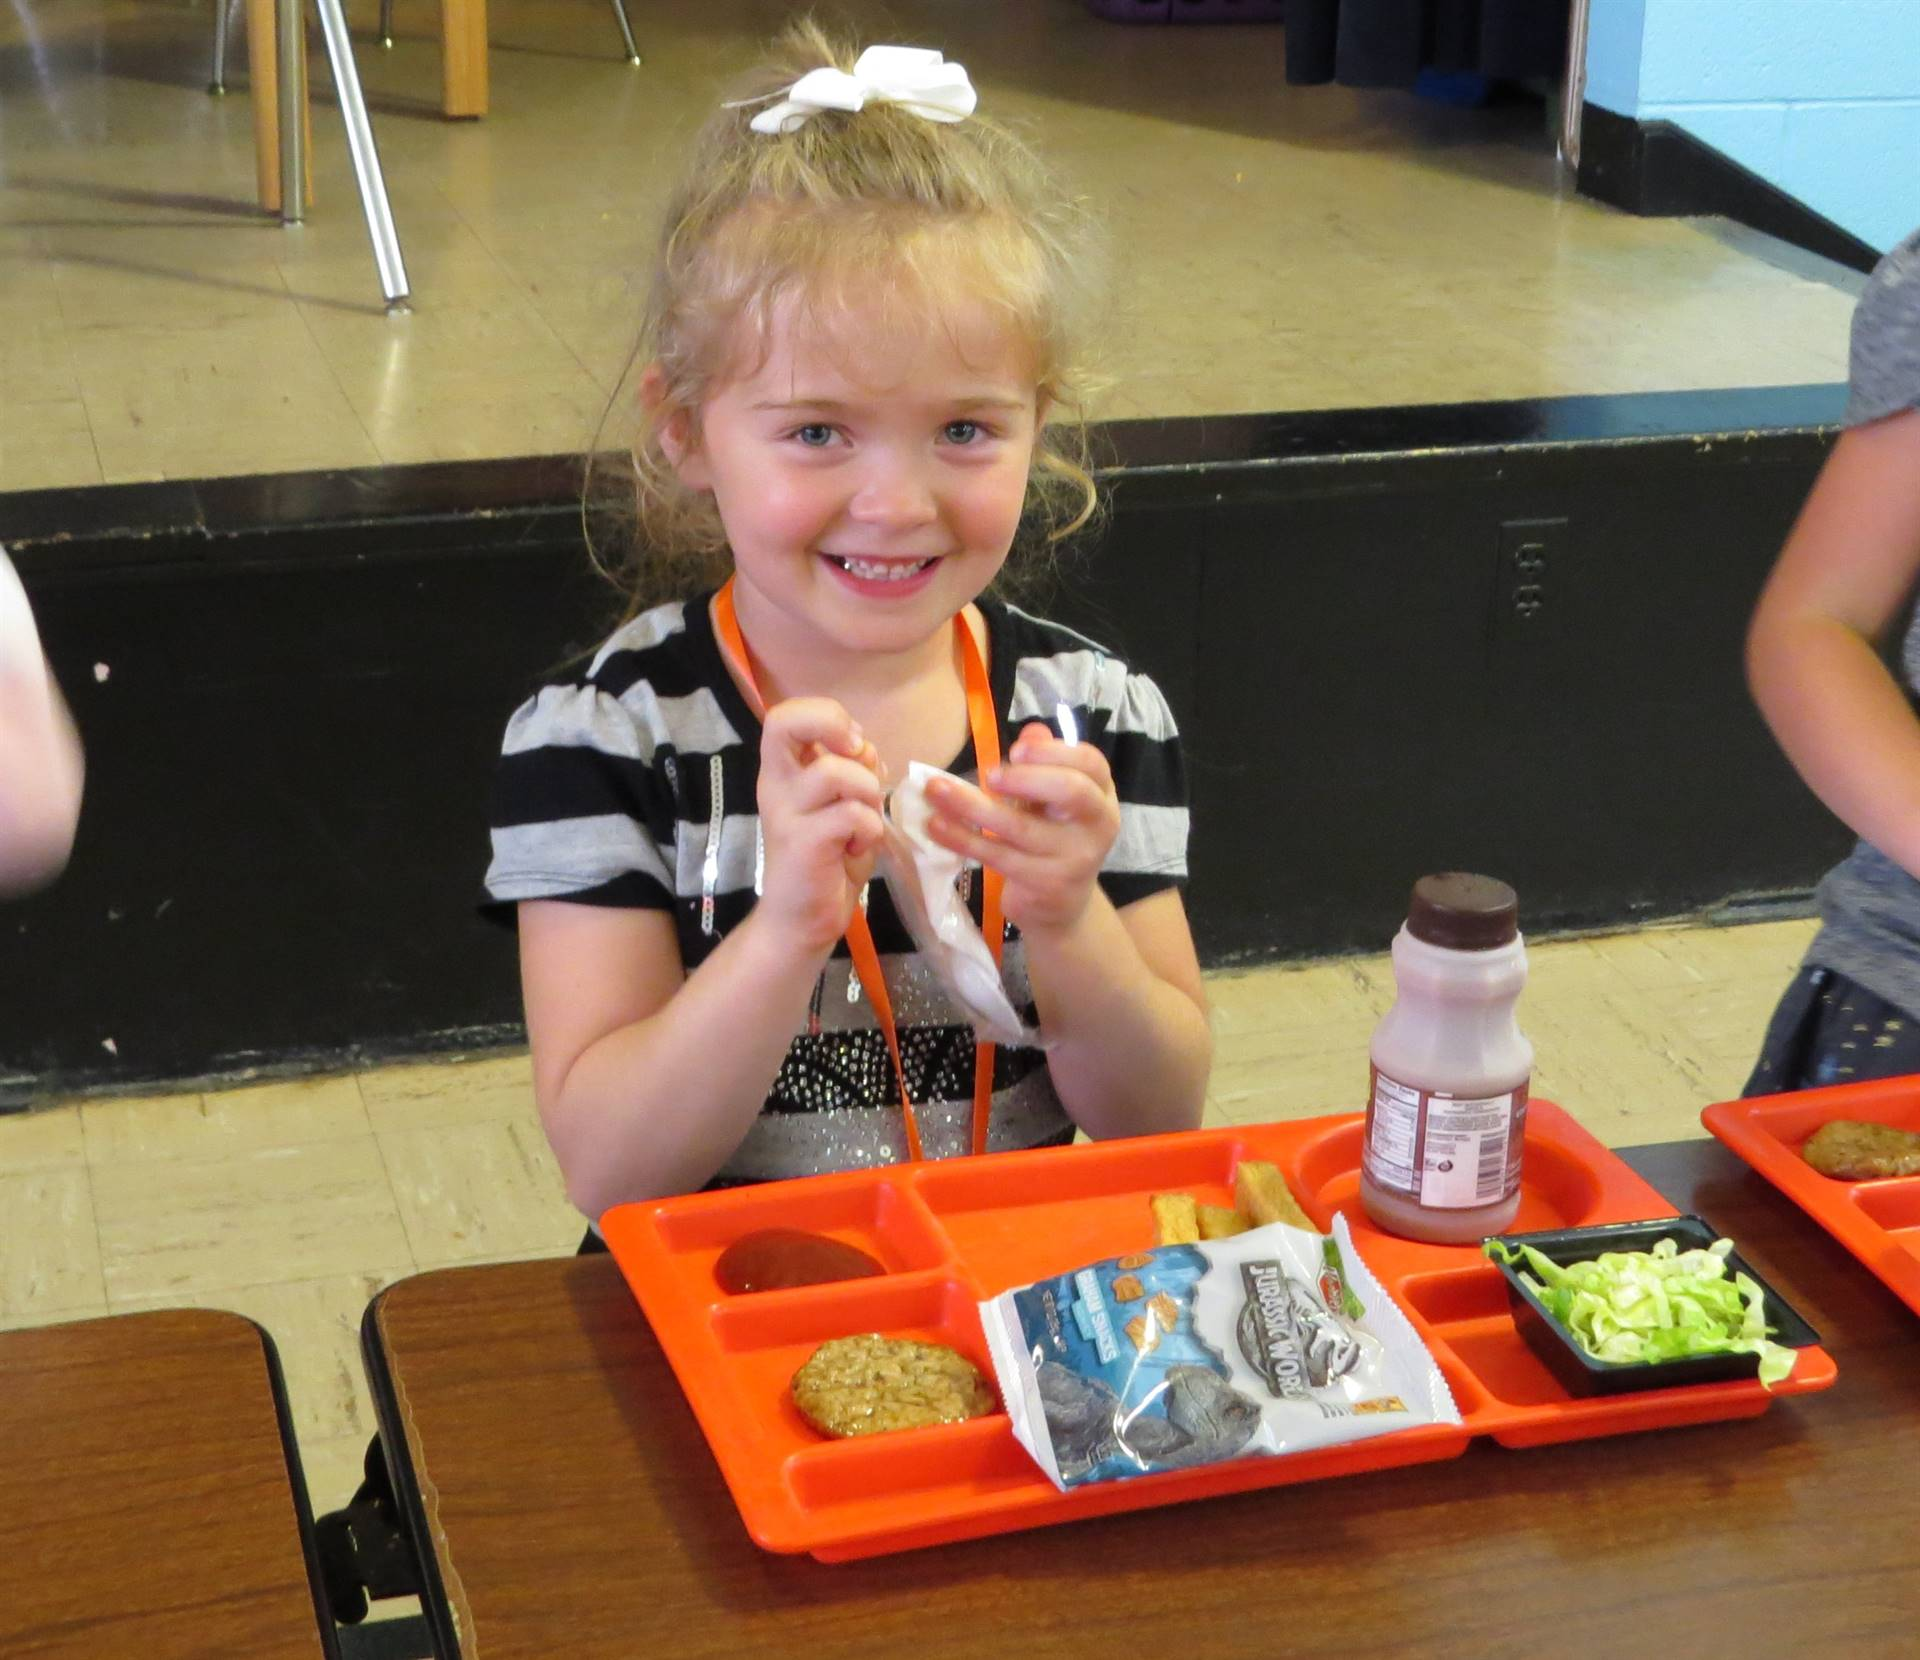 Female first grader eating lunch in cafeteria